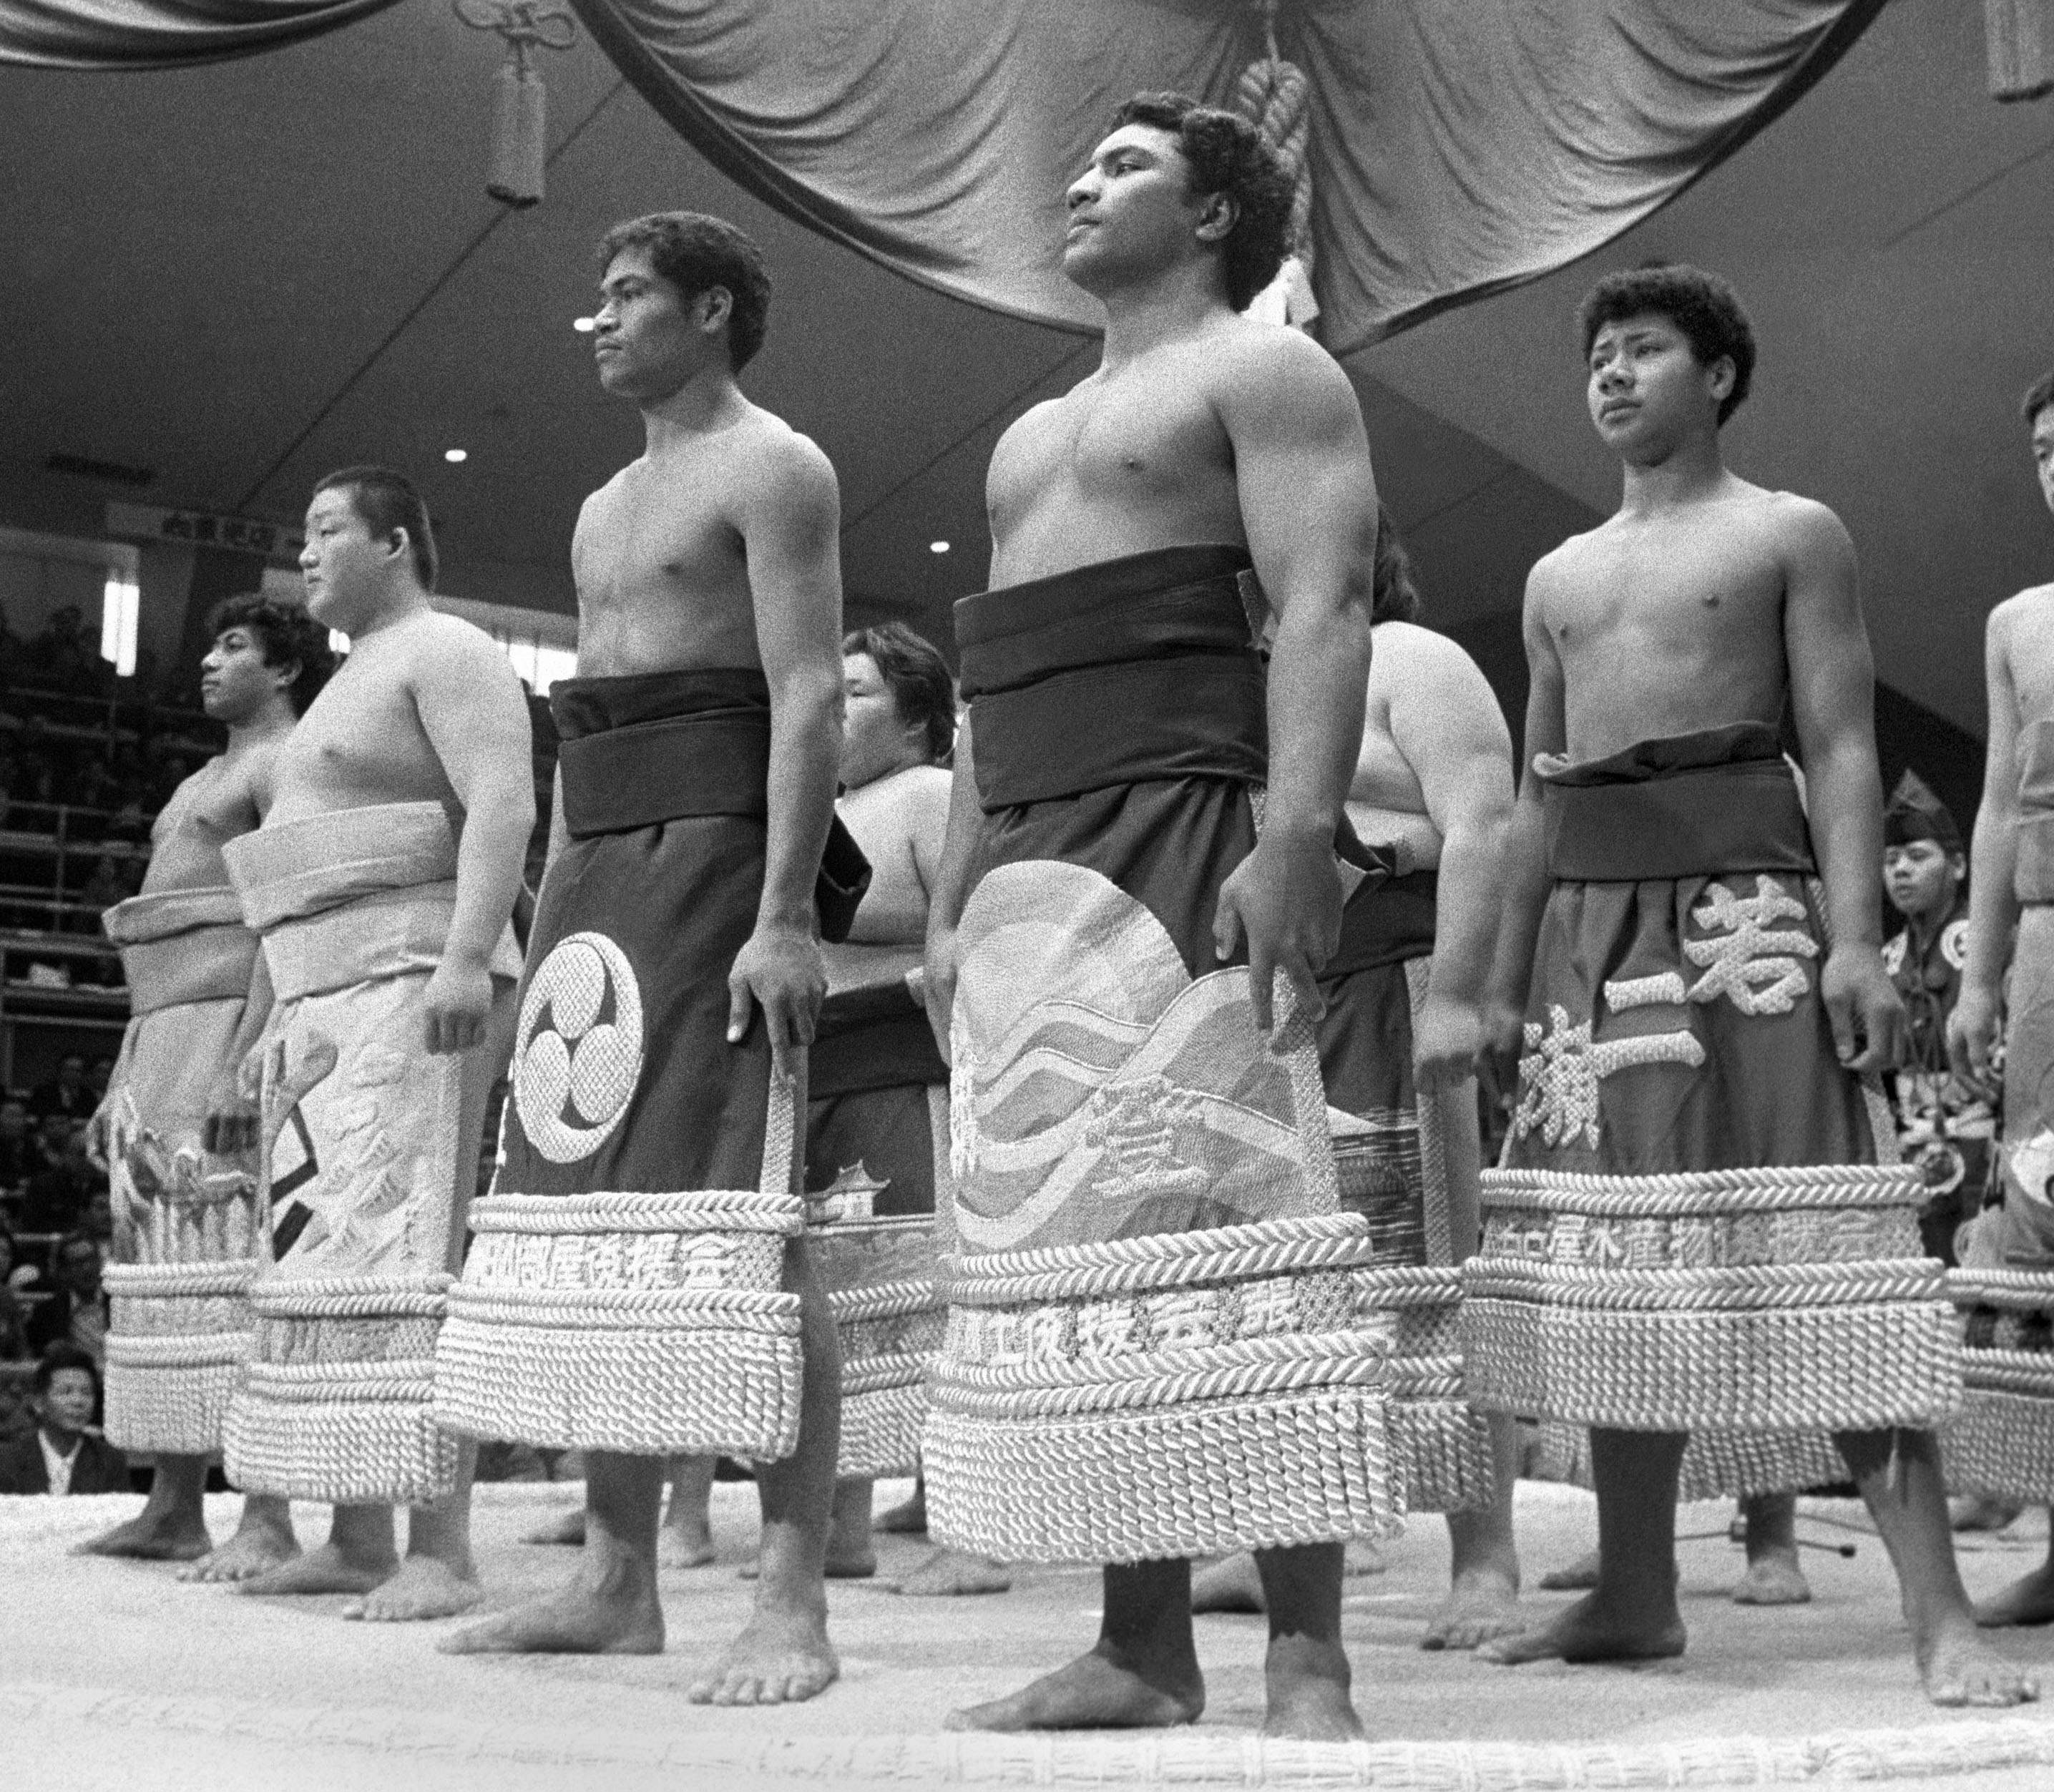 the origin and history of sumo wrestling Sumo wrestling history including origin, facts, images, and current rules for sumo wrestling.